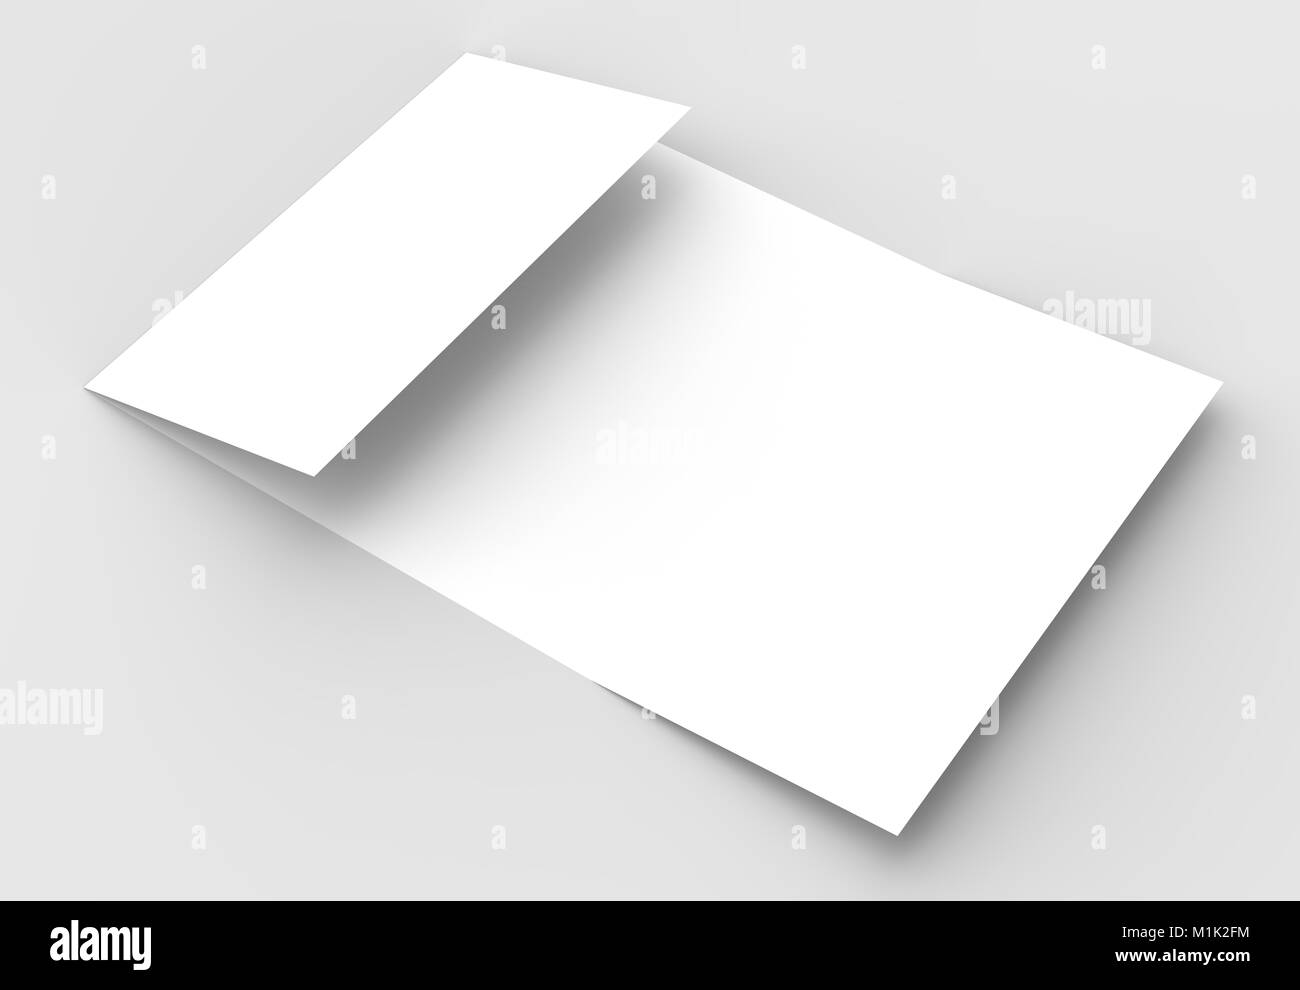 Square gate fold brochure mock up isolated on soft gray